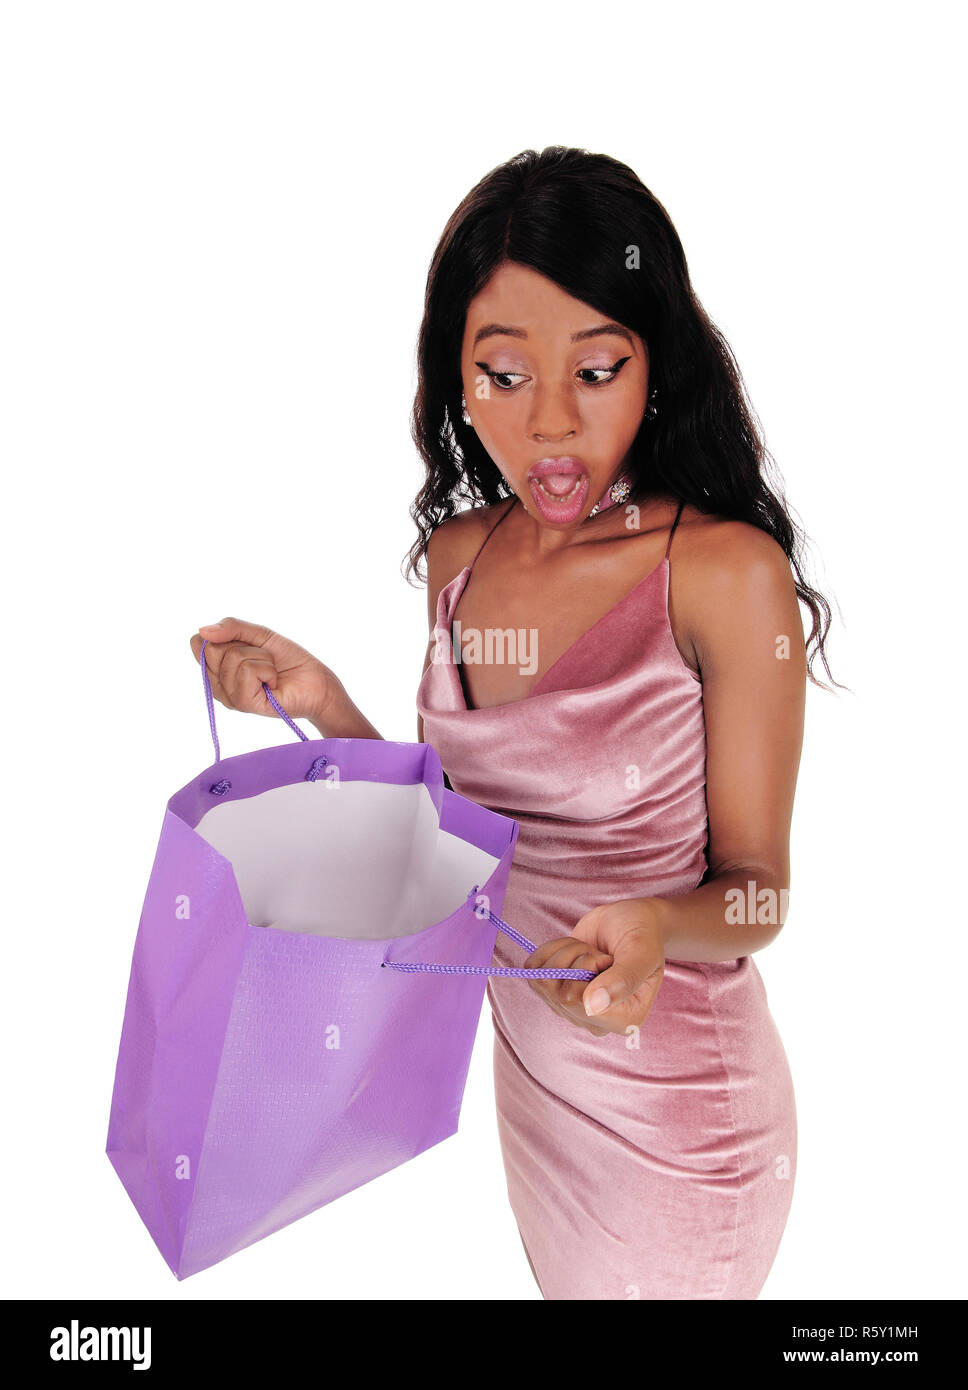 Woman looking surprised in her shopping bag - Stock Image